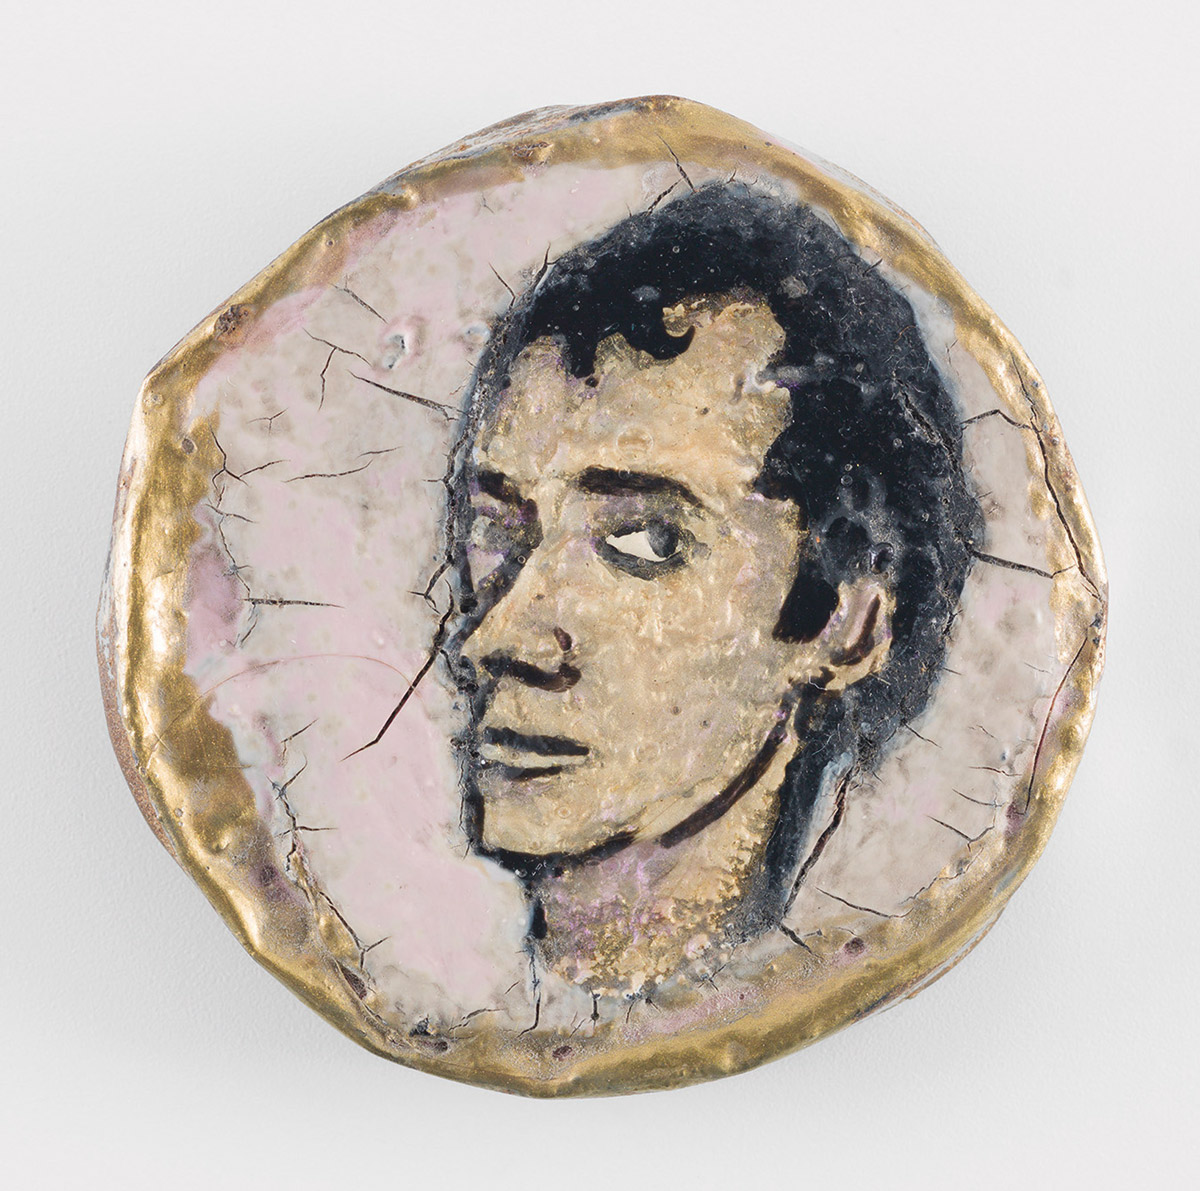 Jerome Caja, Untitled (Portrait of Charles Sexton), 1992. Nail polish and Charles Sexton's ashes on bottle cap, approximately 2 inches diameter. Collection Amy Scholder. Photo credit: Christopher Burke Studios